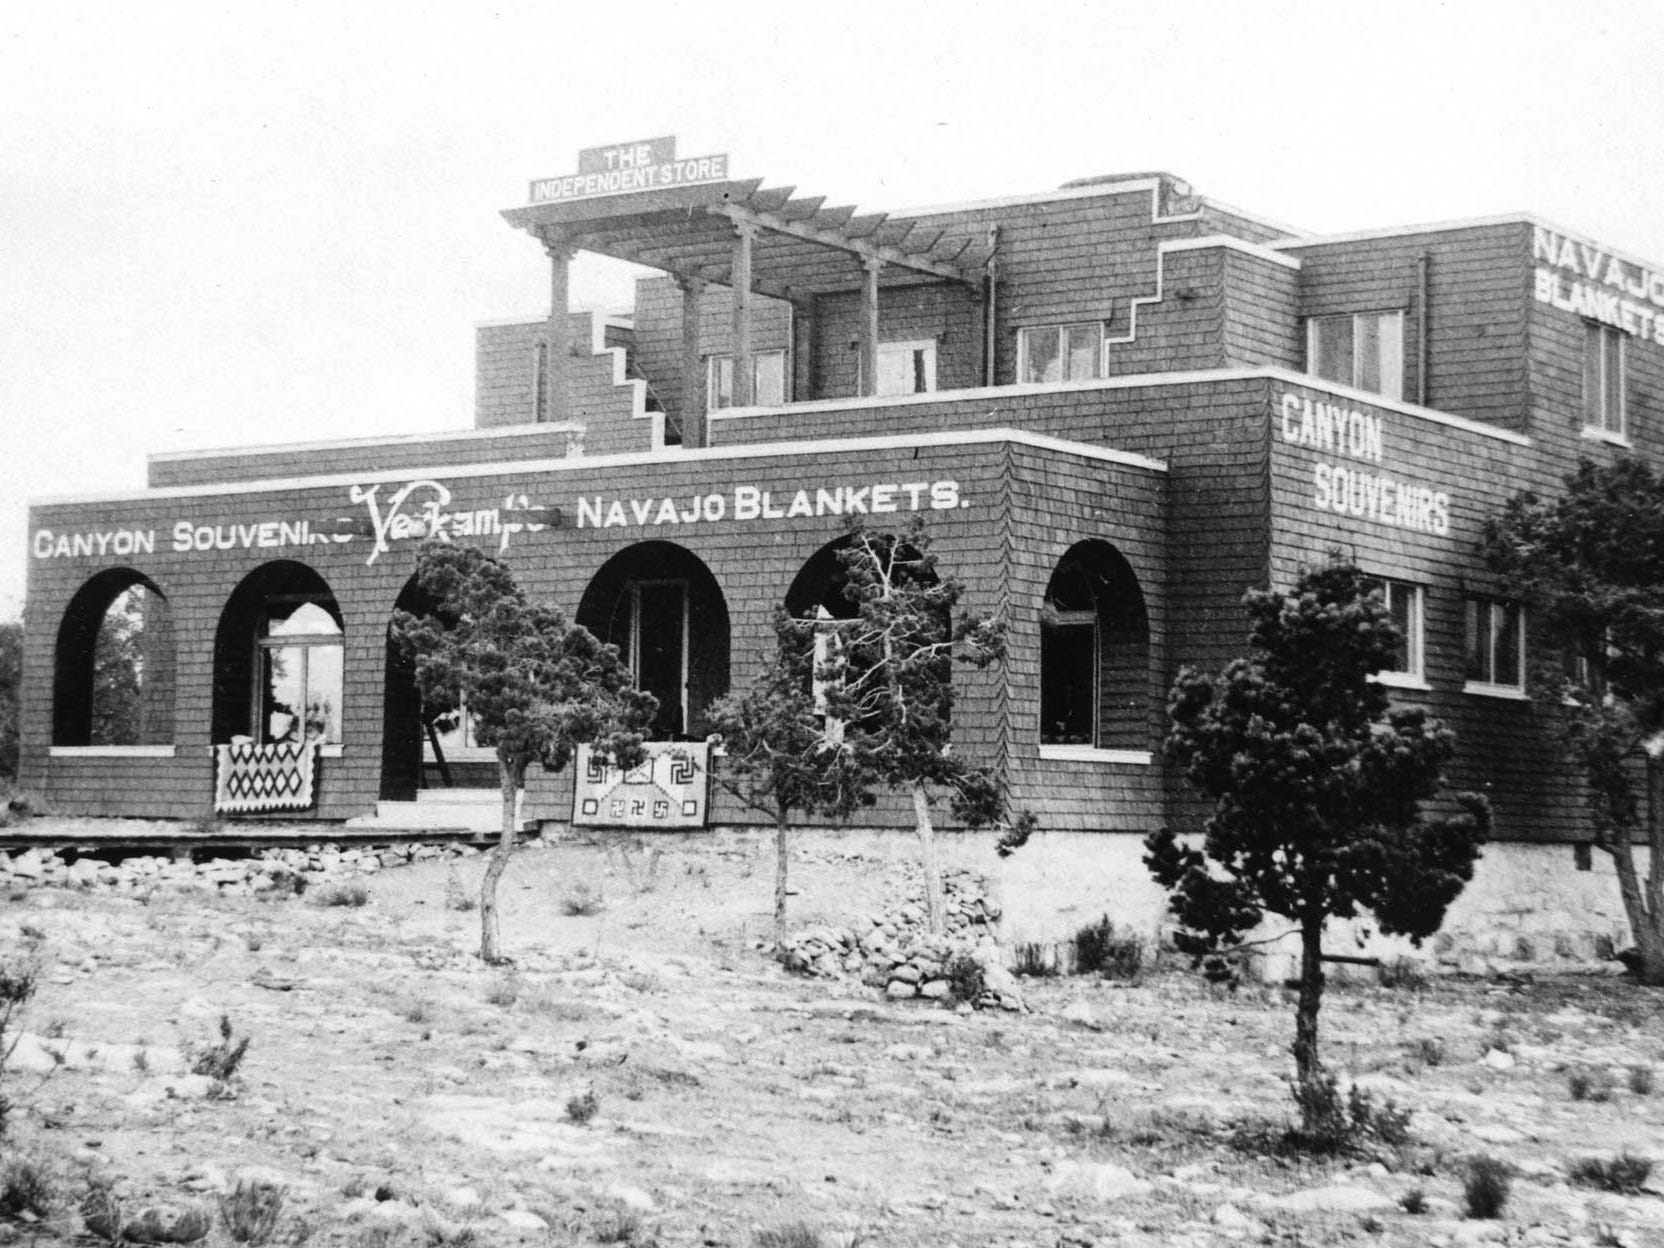 The Verkamp's shop, shown here ca.  1910, sold Navajo rugs and blankets as well as other souvenirs.